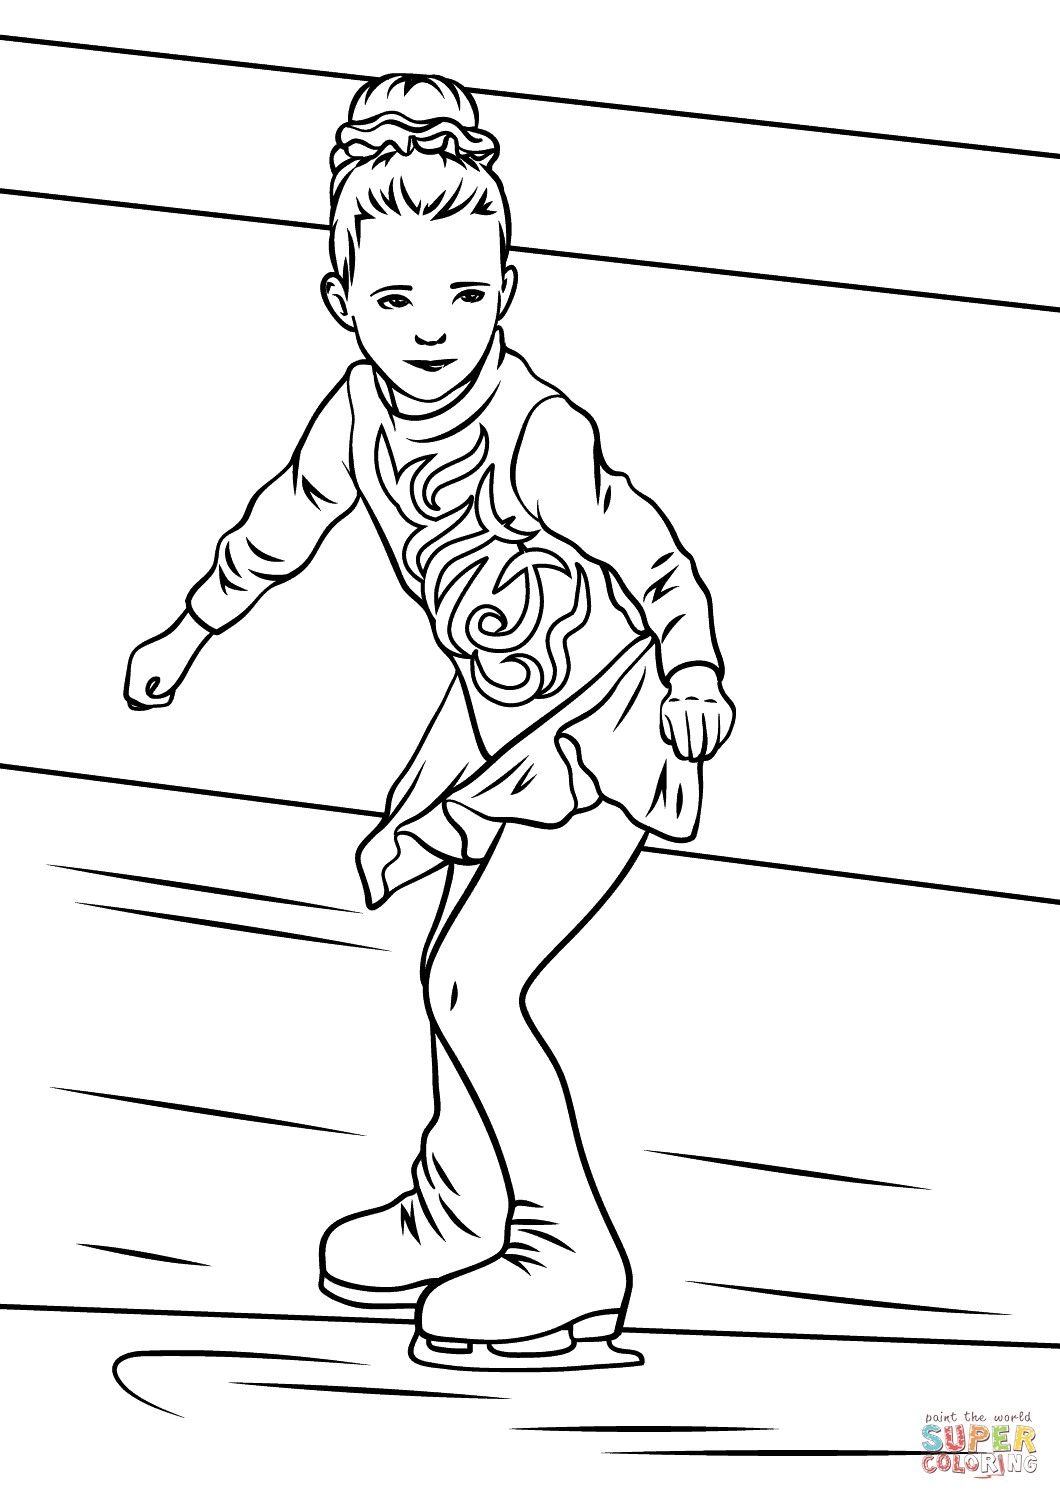 1060x1500 Ice Skating Coloring Pages To Print Best Of Girl Ice Skater